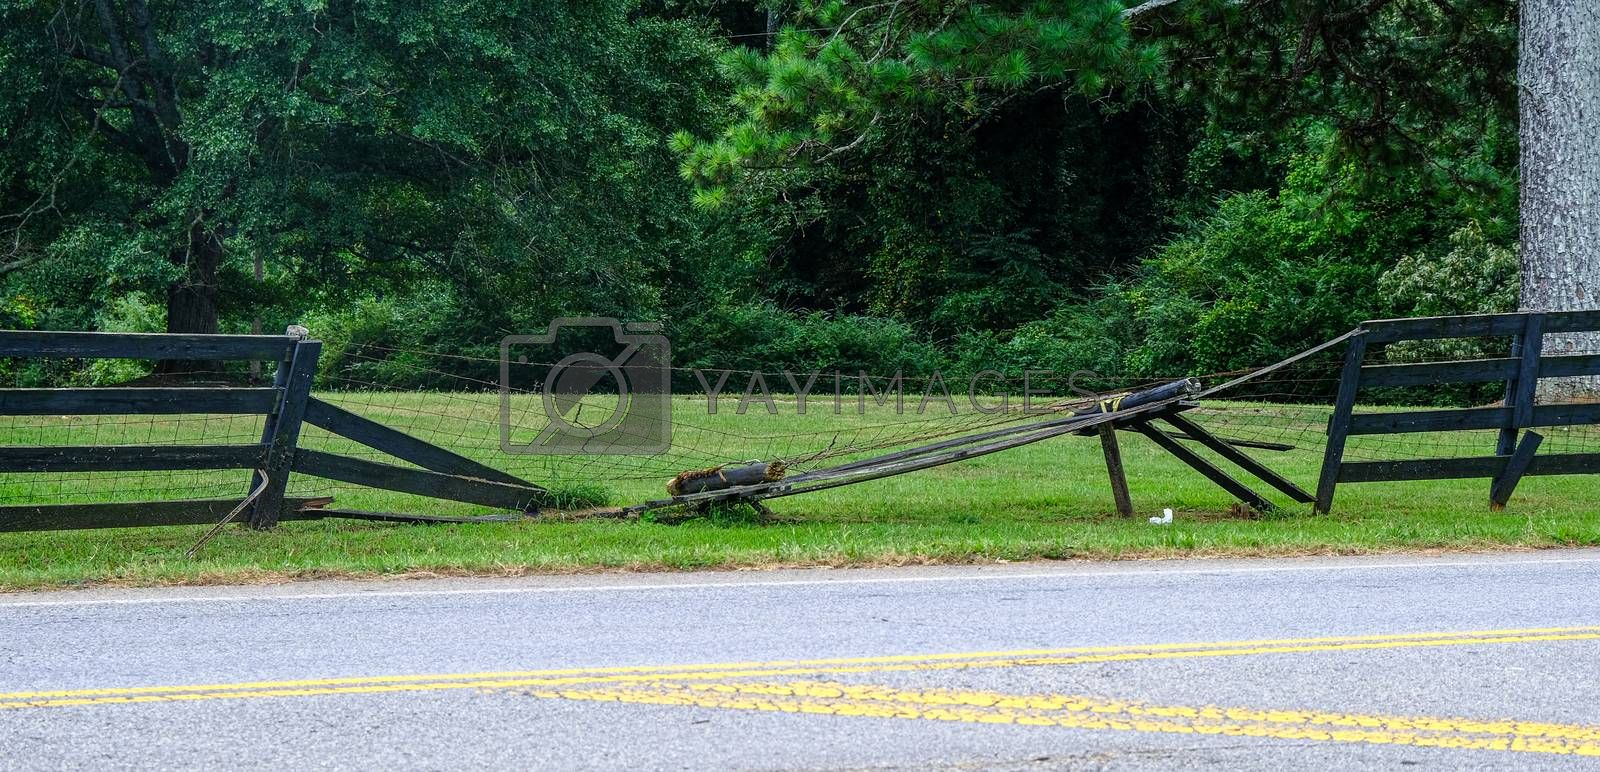 A Broken Fence by Roadside from a Car Accident